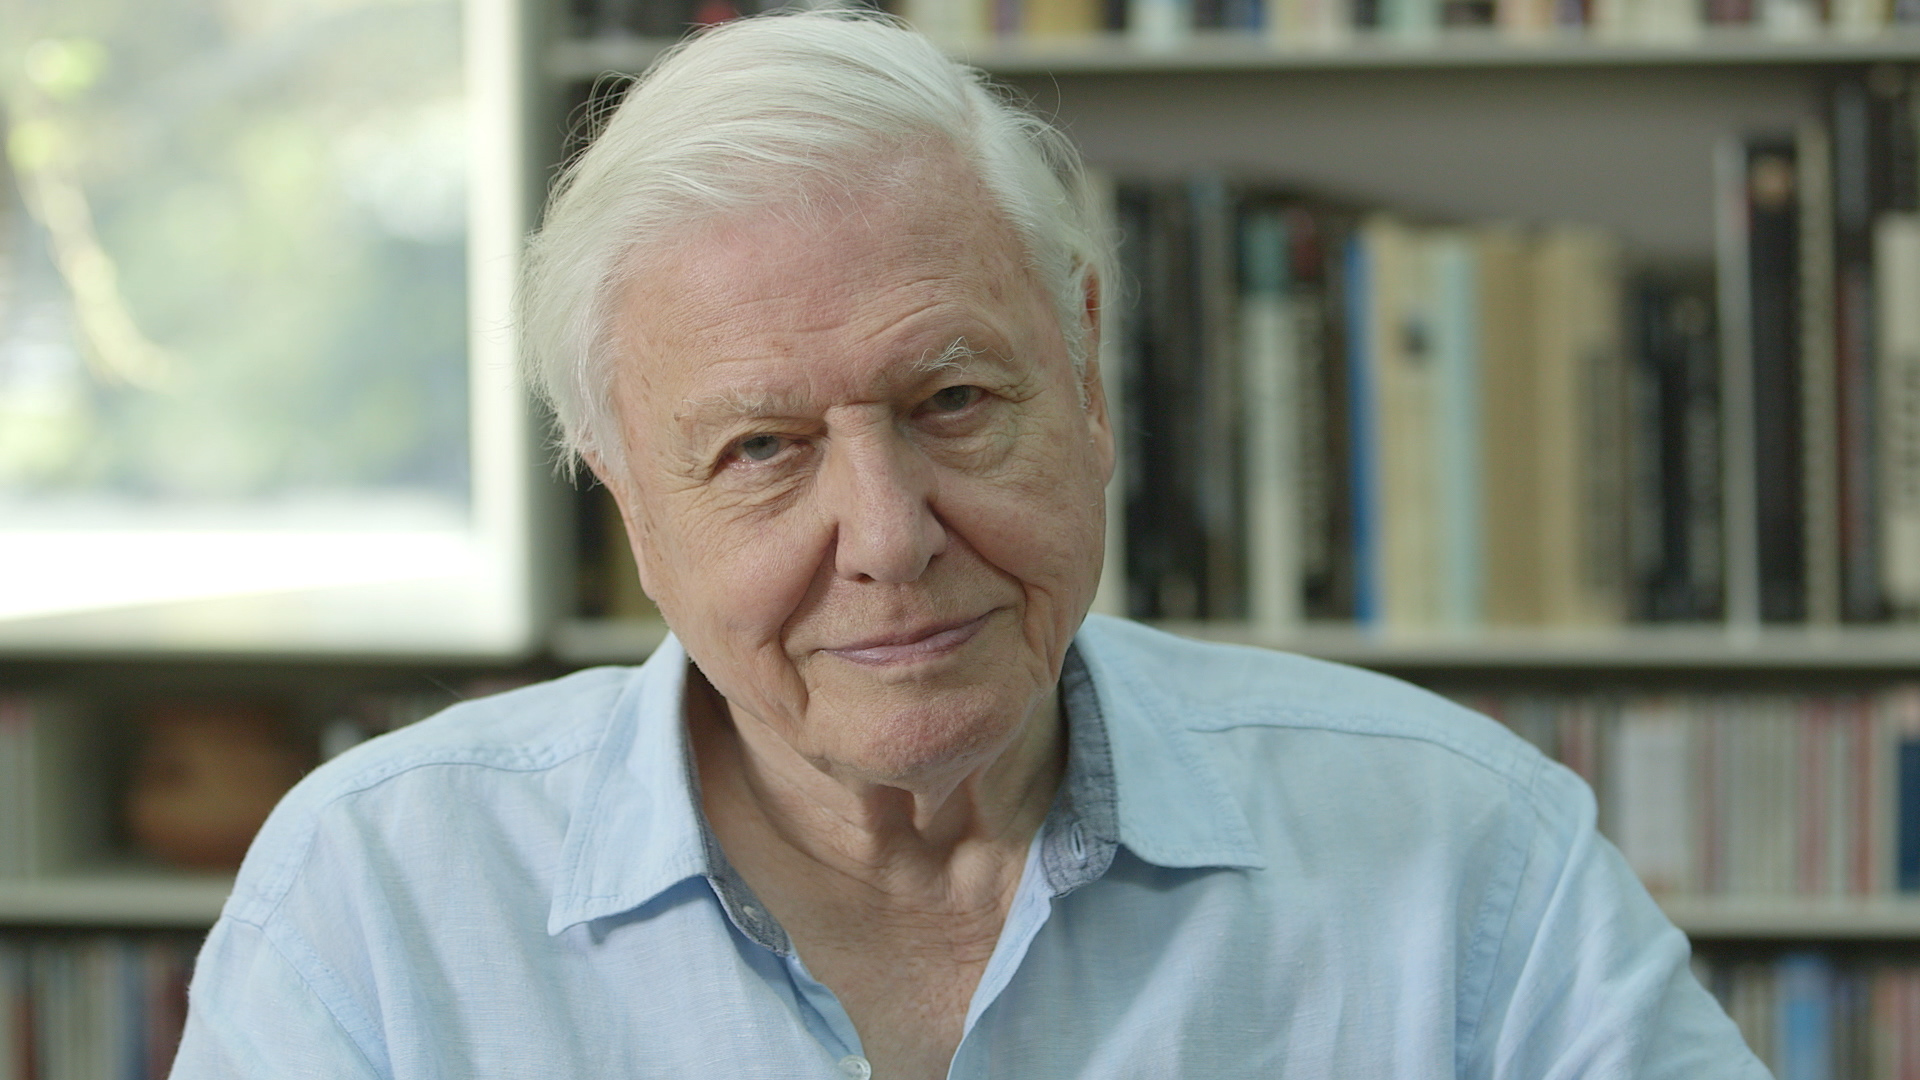 David Attenborough: On climate change, optimism and Blue Planet II